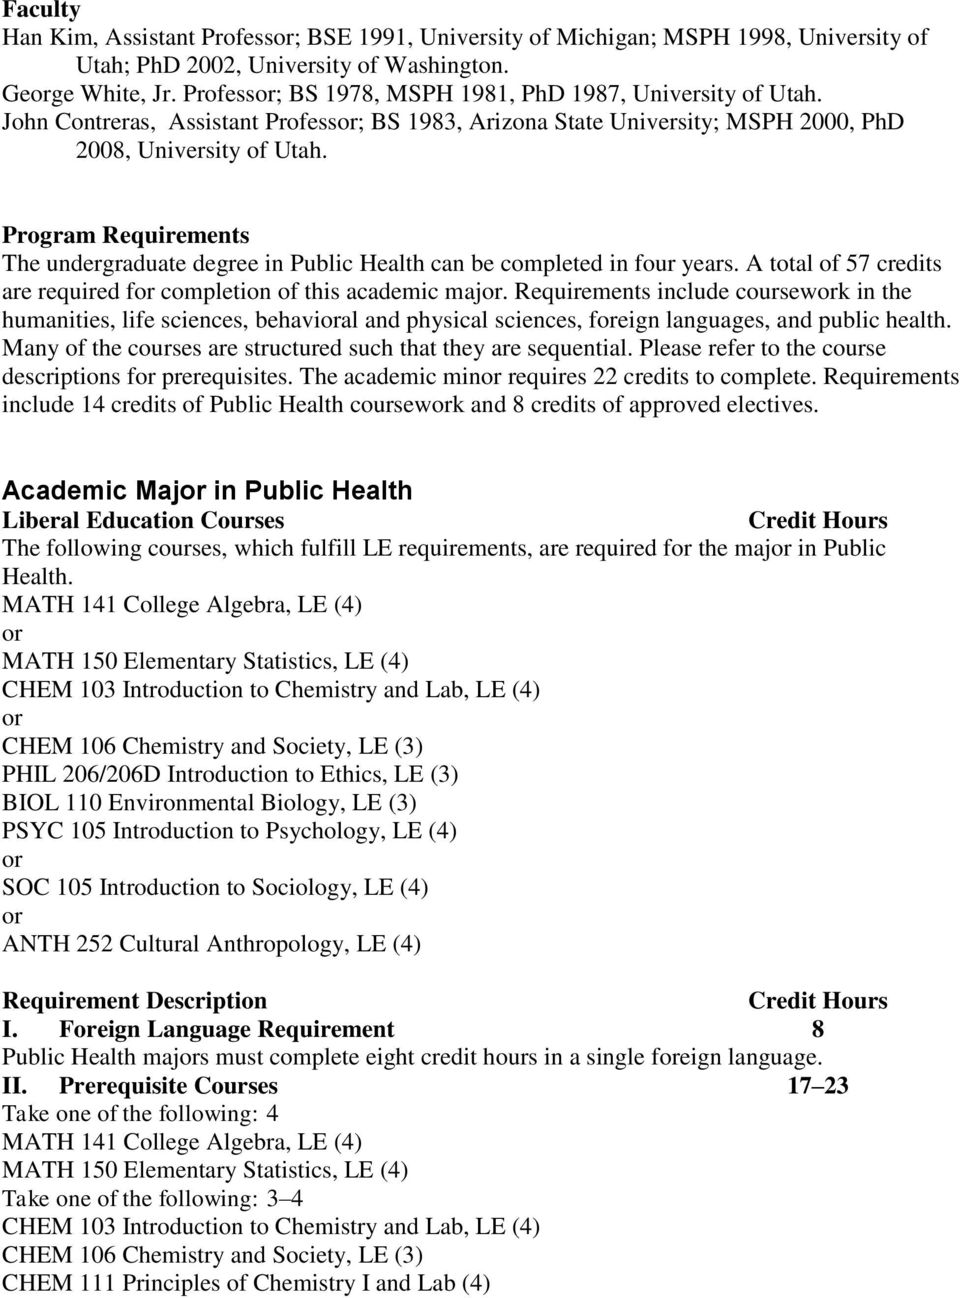 Program Requirements The undergraduate degree in Public Health can be completed in four years. A total of 57 credits are required f completion of this academic maj.